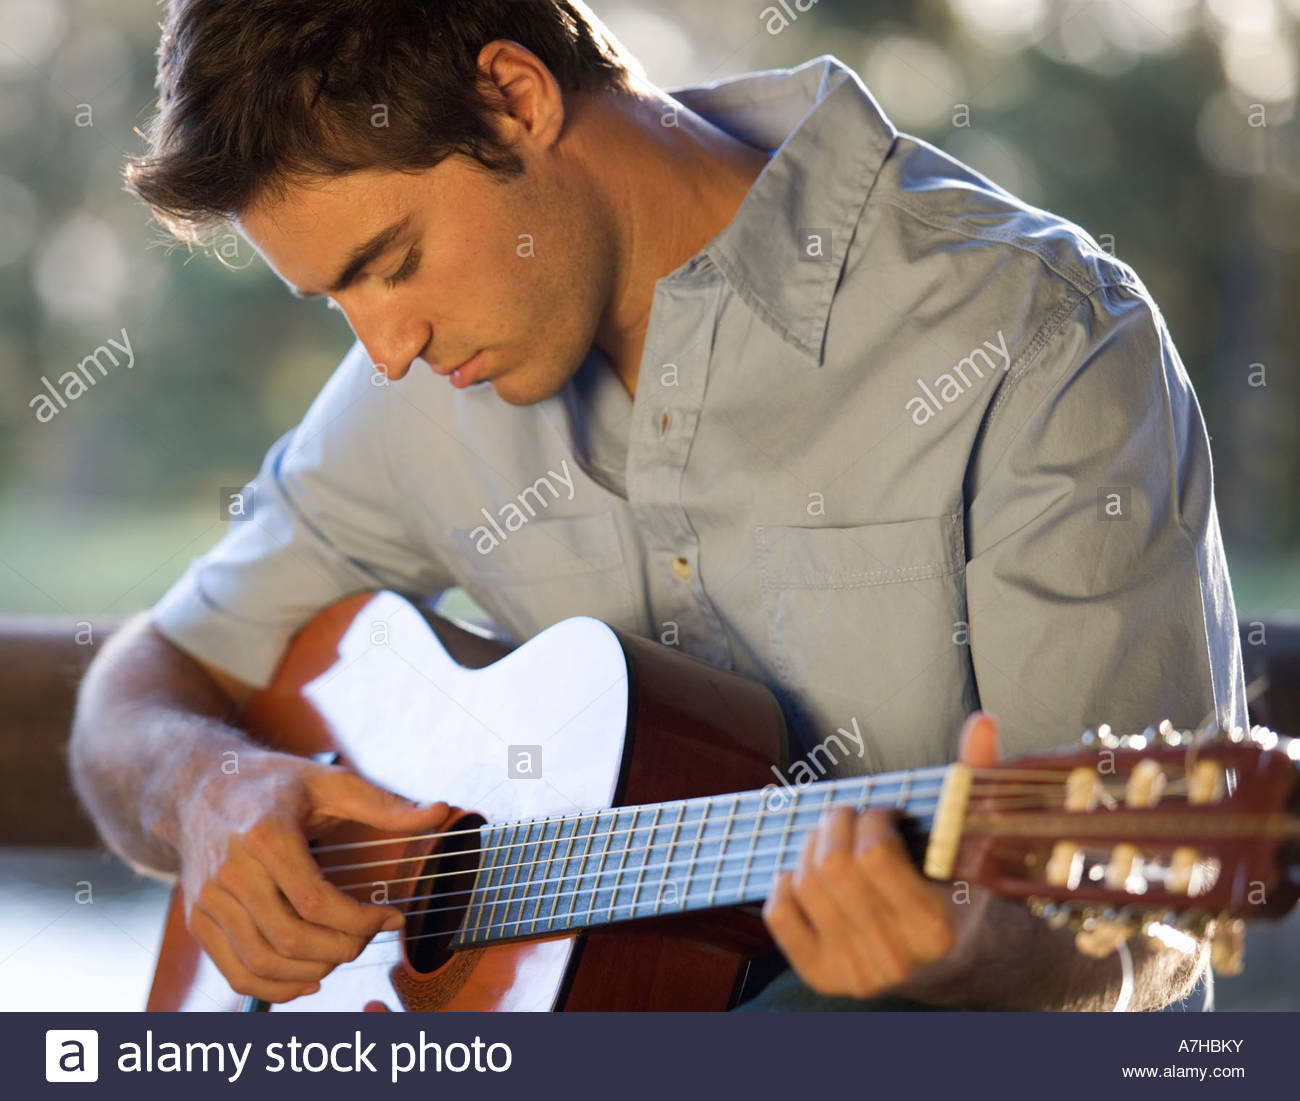 A young man playing a guitar - Stock Image